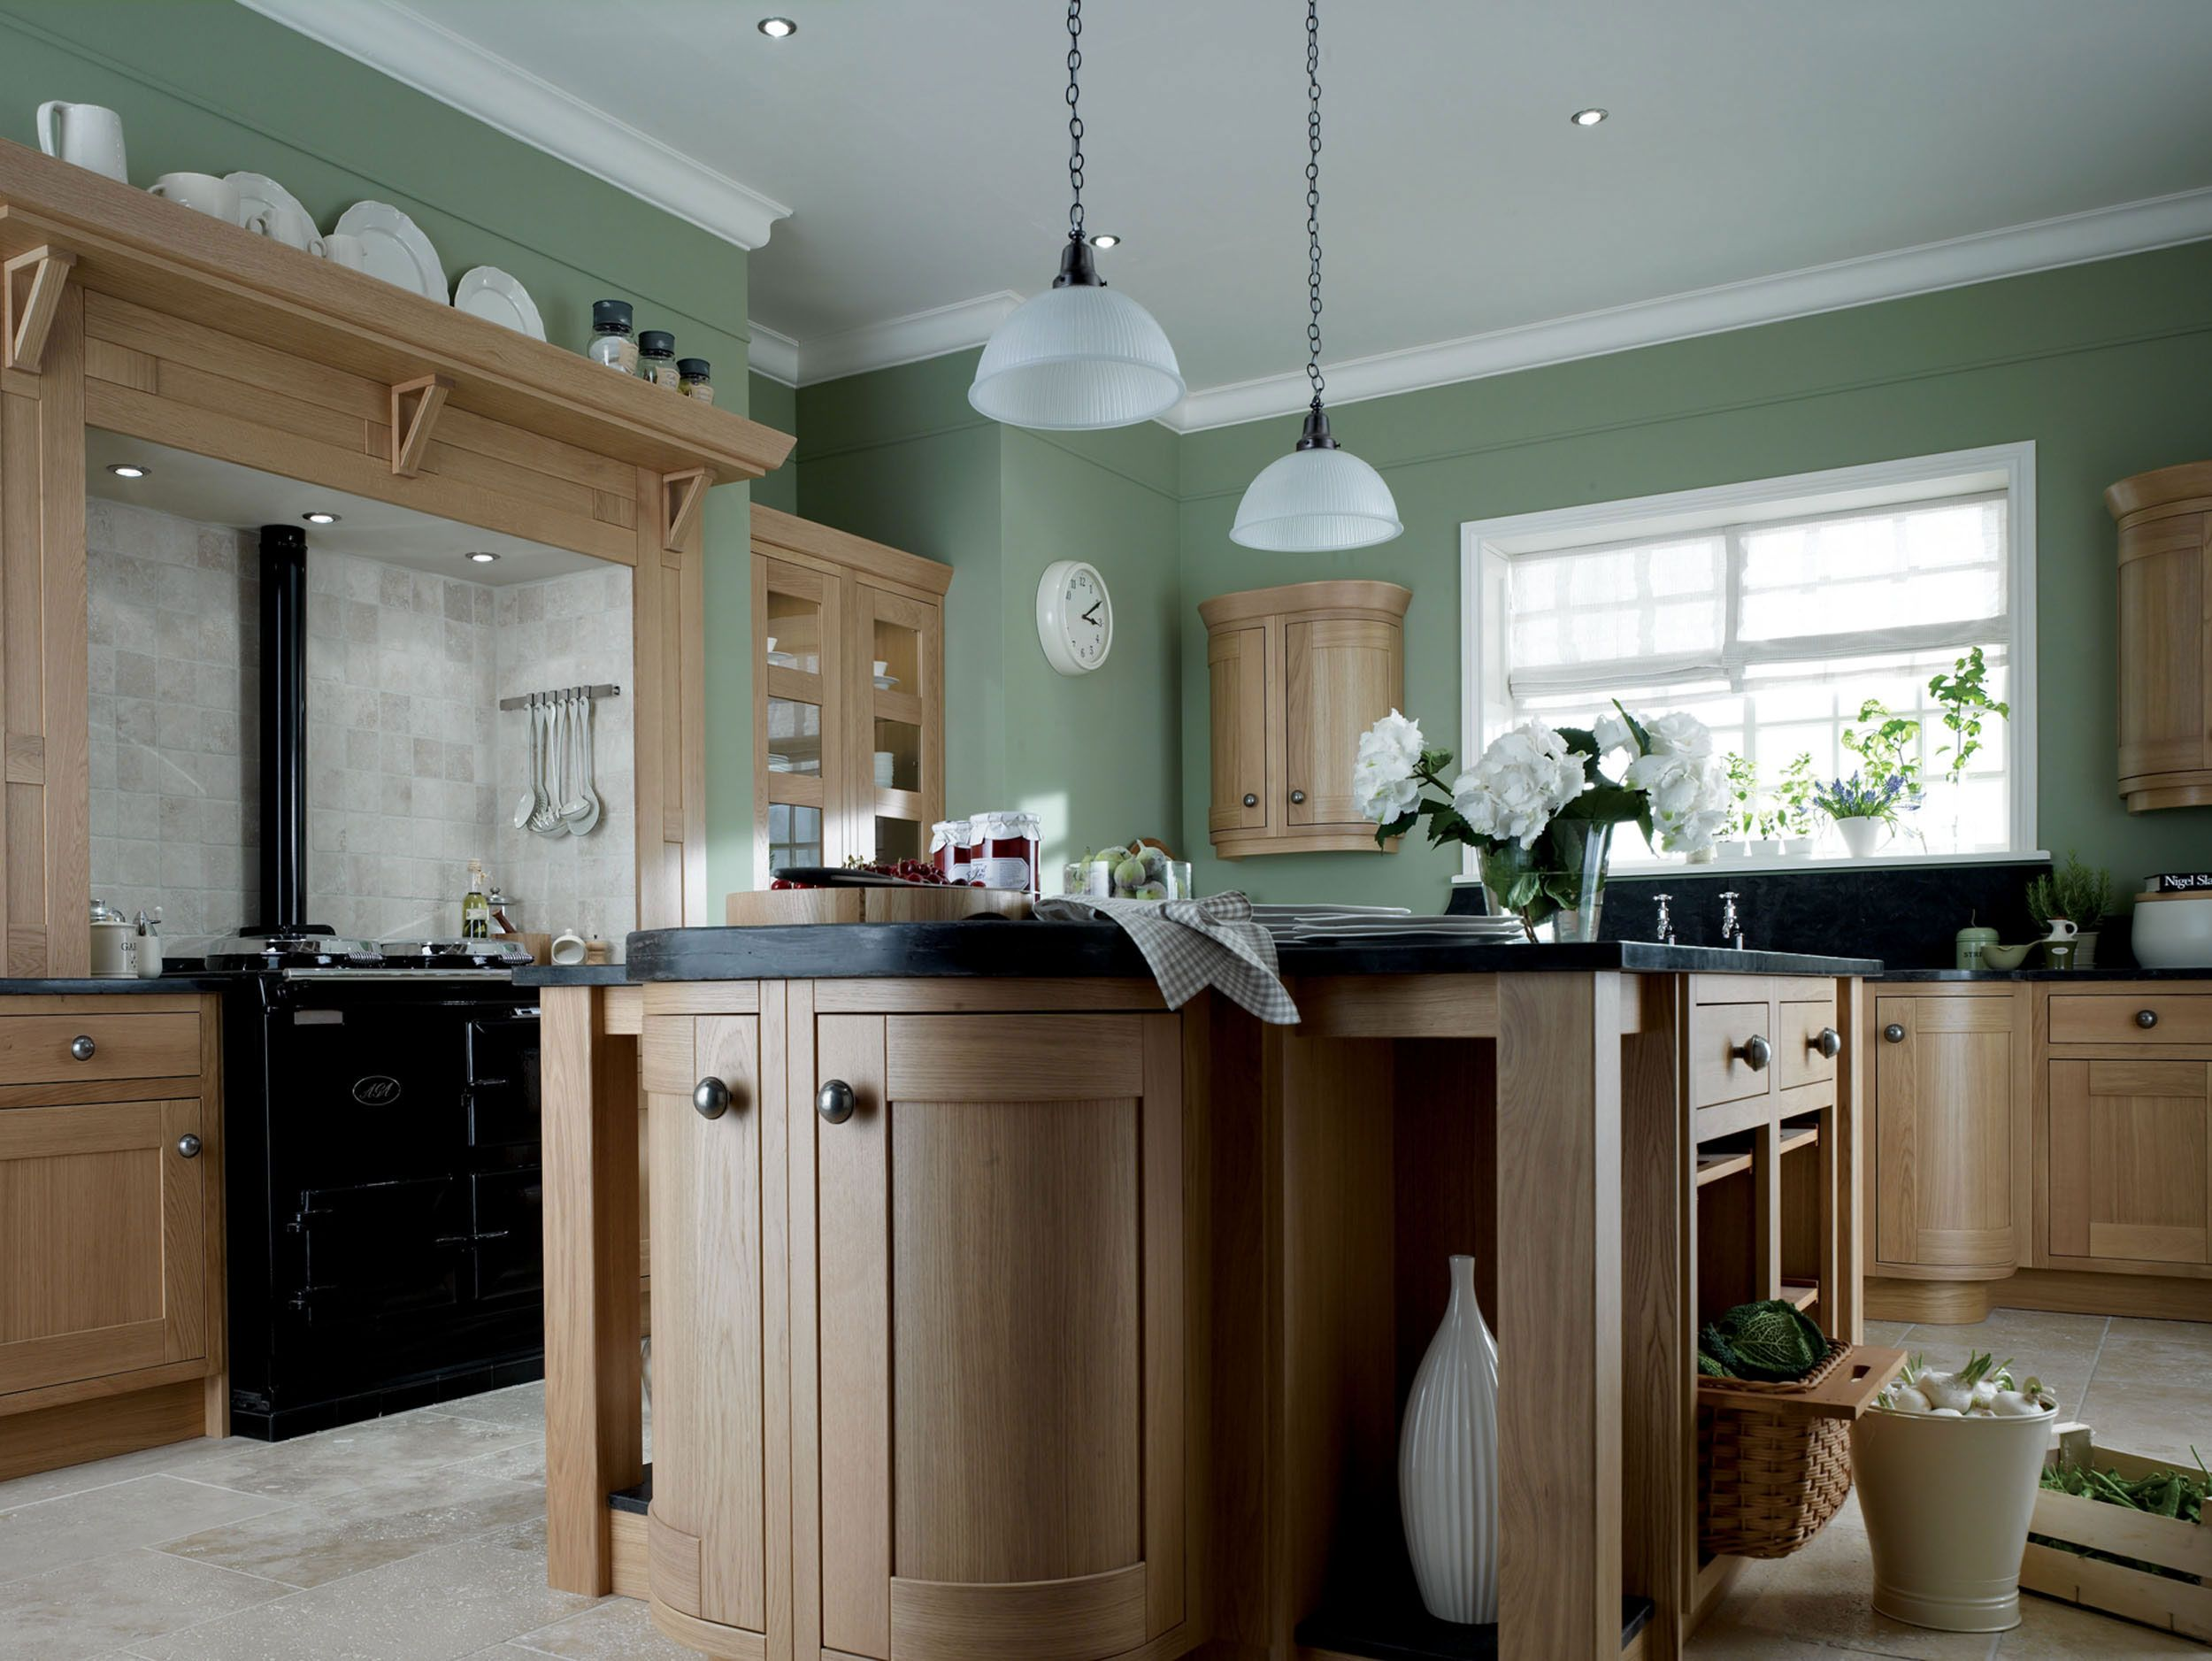 Kitchen Colors That Go With Oak Cabinets Sketch Of Good Colors For Kitchens Kitchen Design Ideas